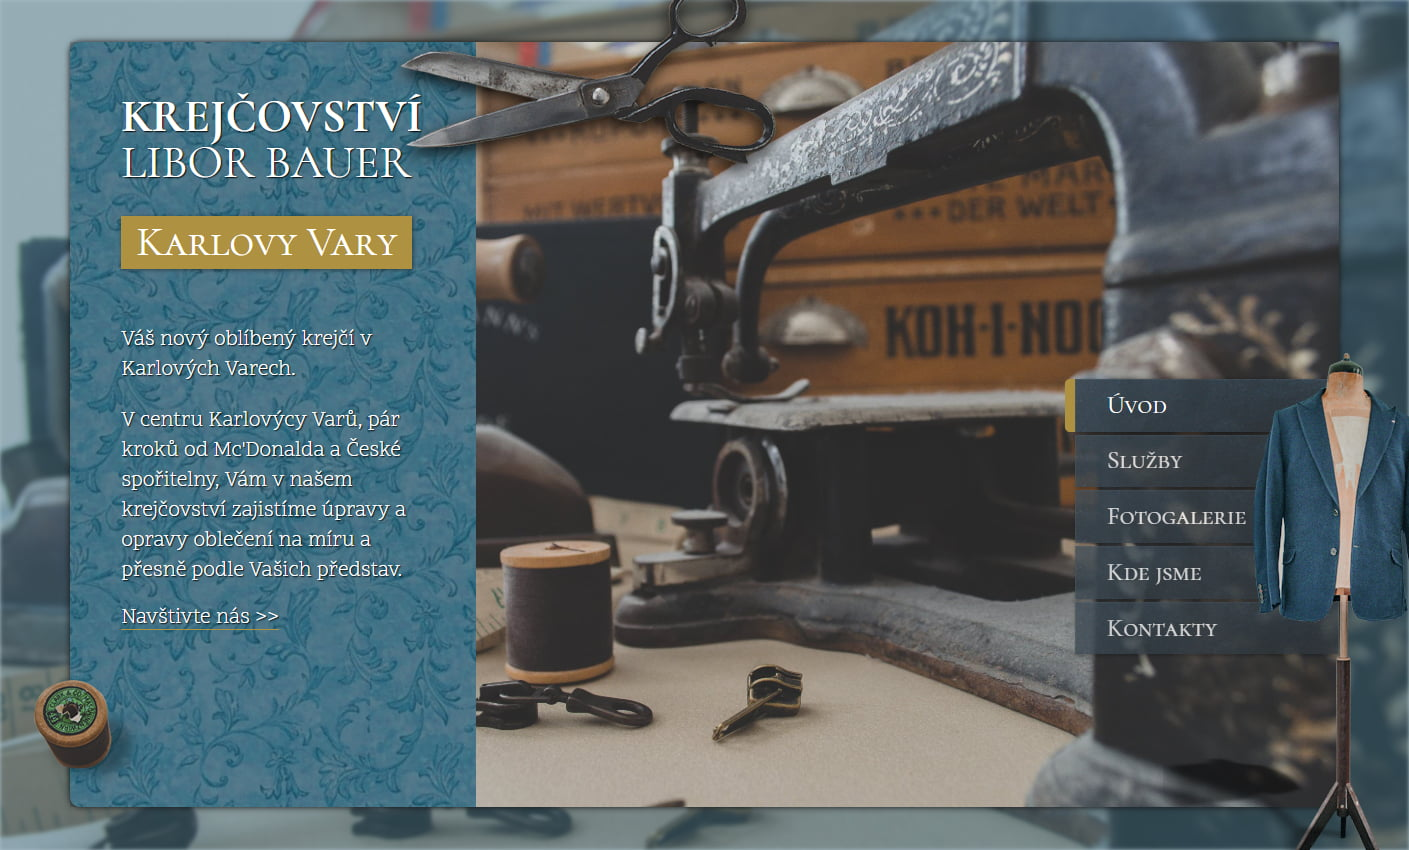 Tailoring services in Karlovy Vary